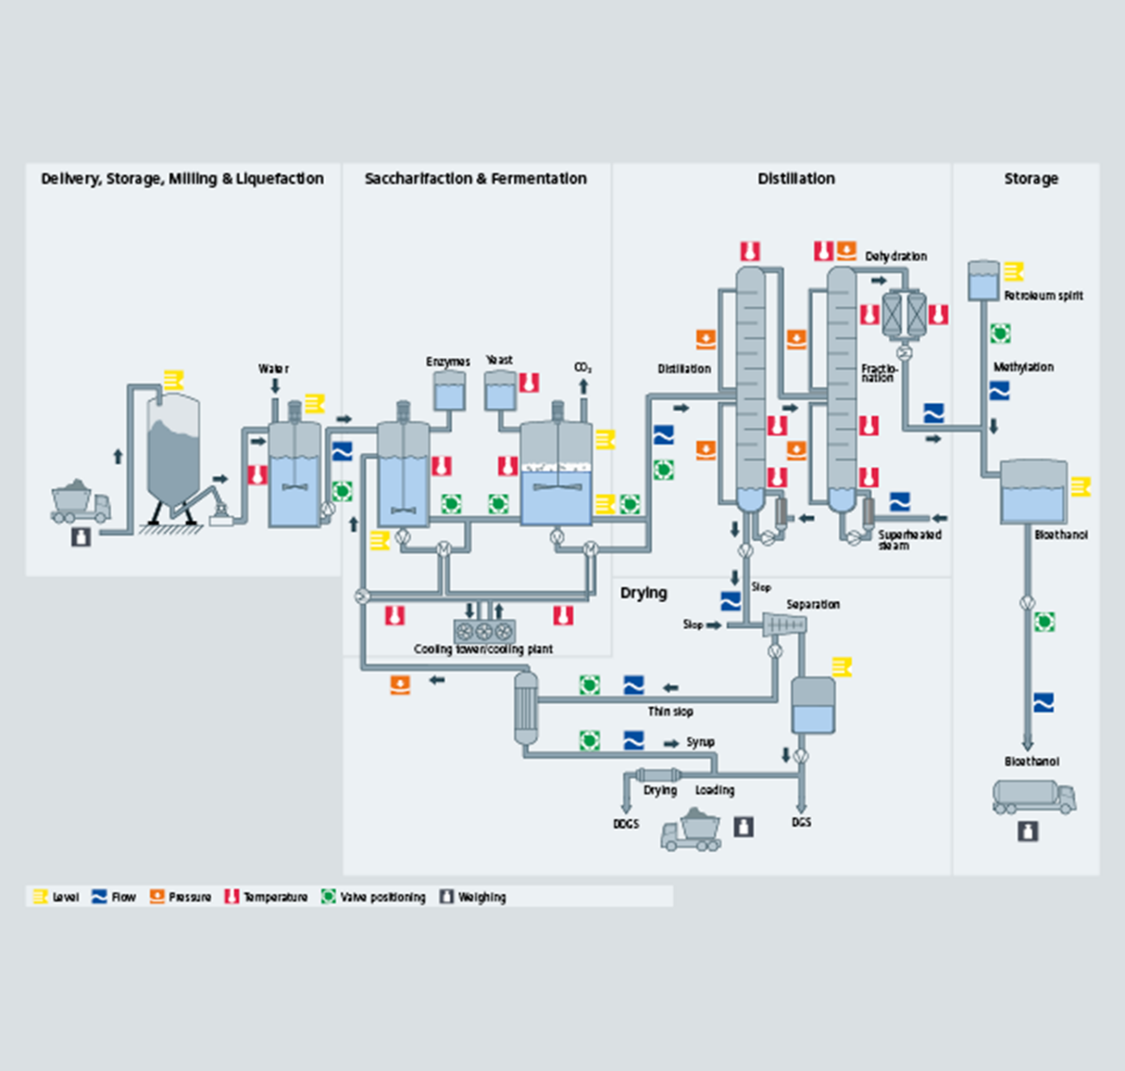 Bioethanol overview process diagram - Siemens USA